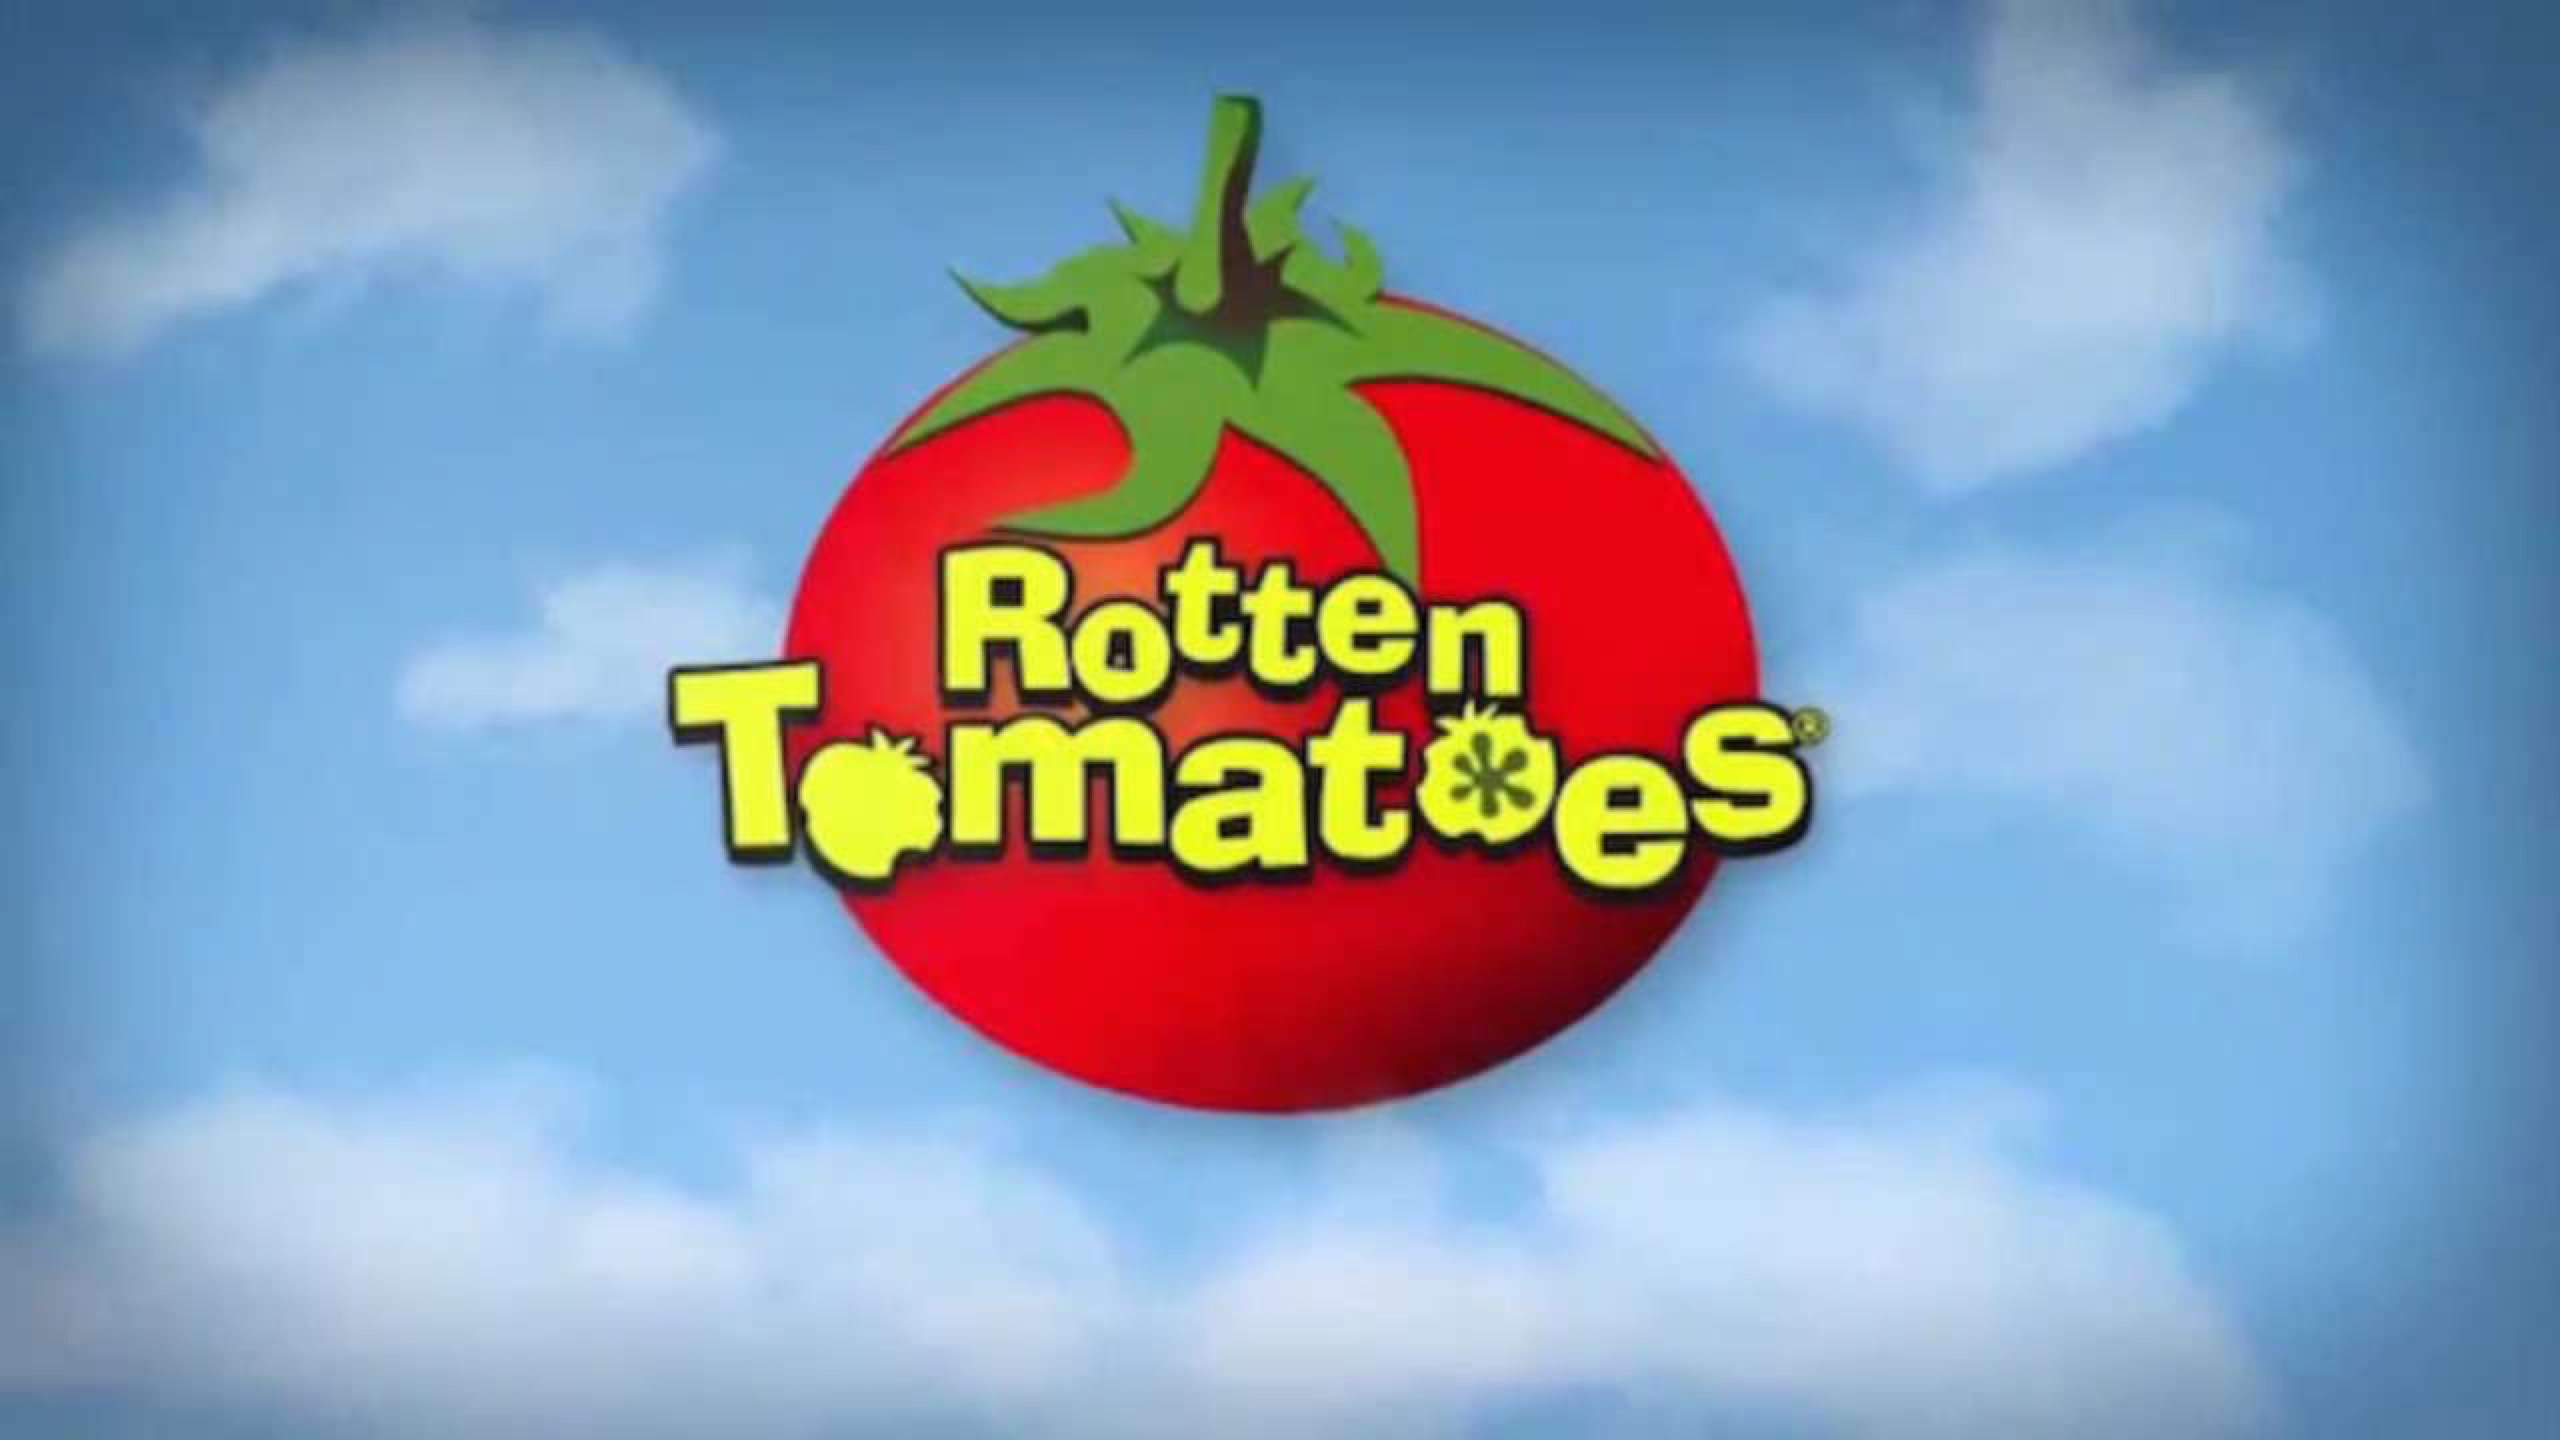 Audience reviews on Rotten Tomatoes are easily manipulated. That's about to change.